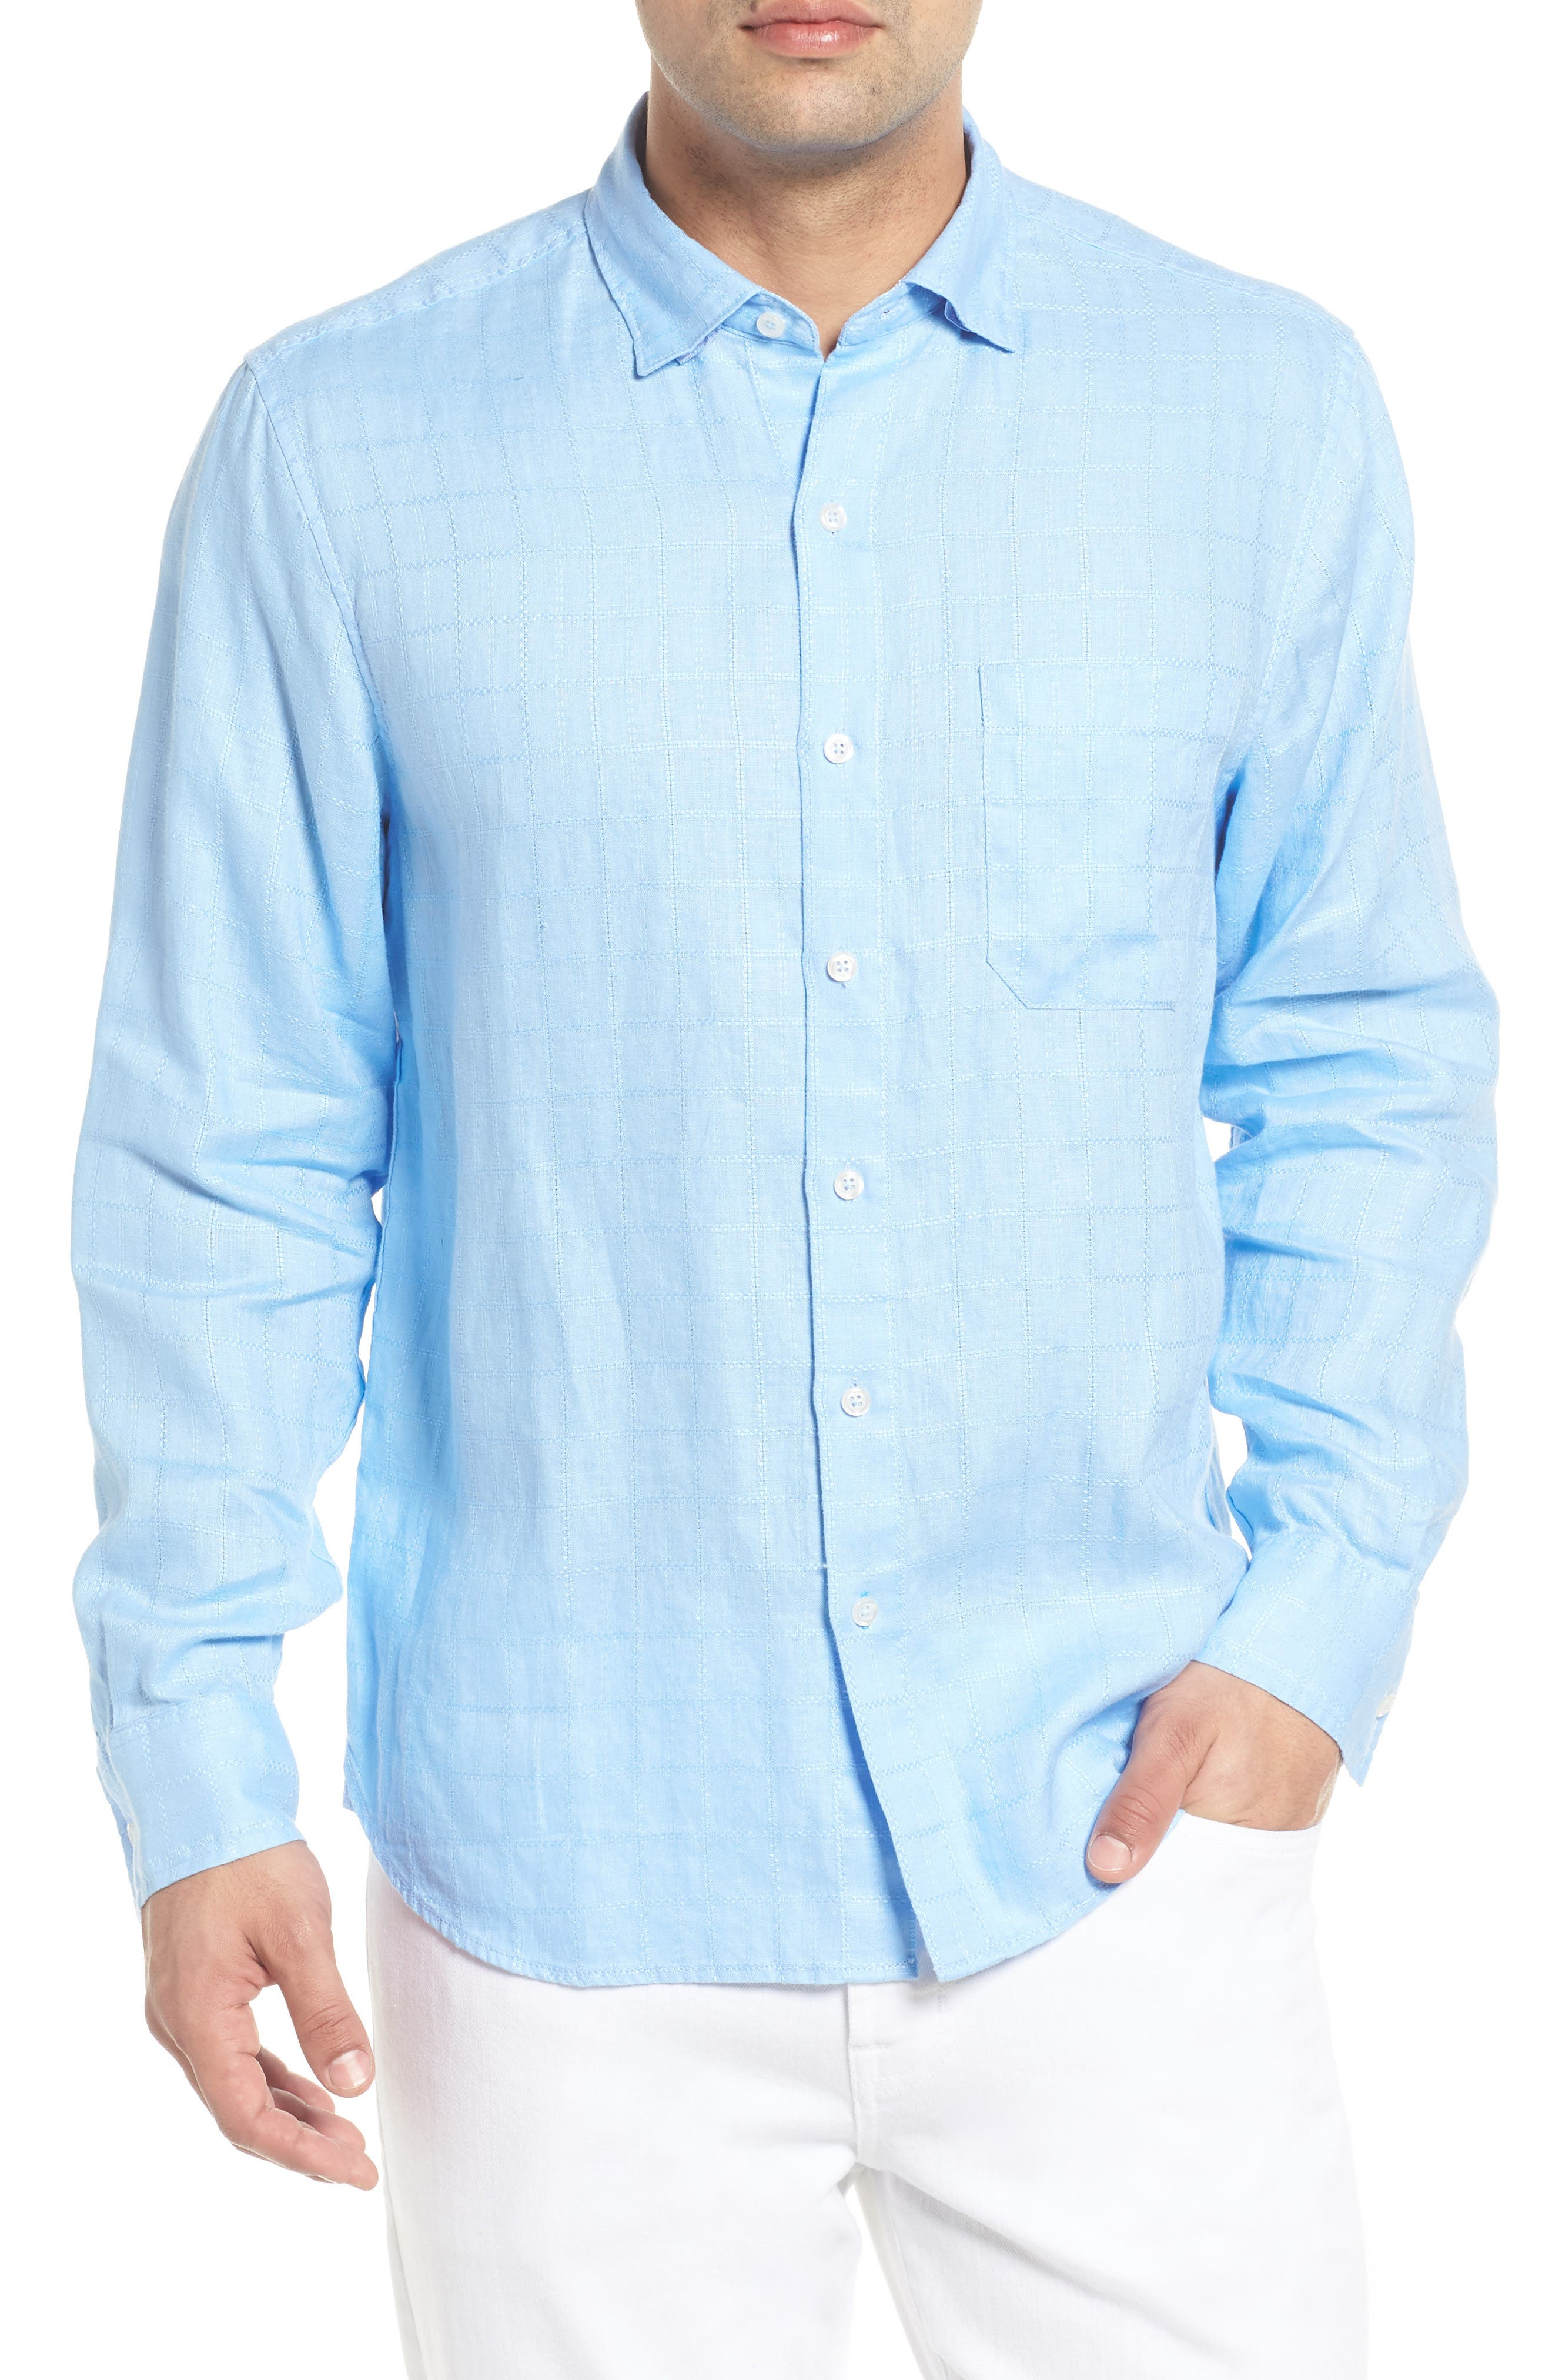 Costa Sera Linen Sport Shirt,                             Main thumbnail 1, color,                             Light Sky